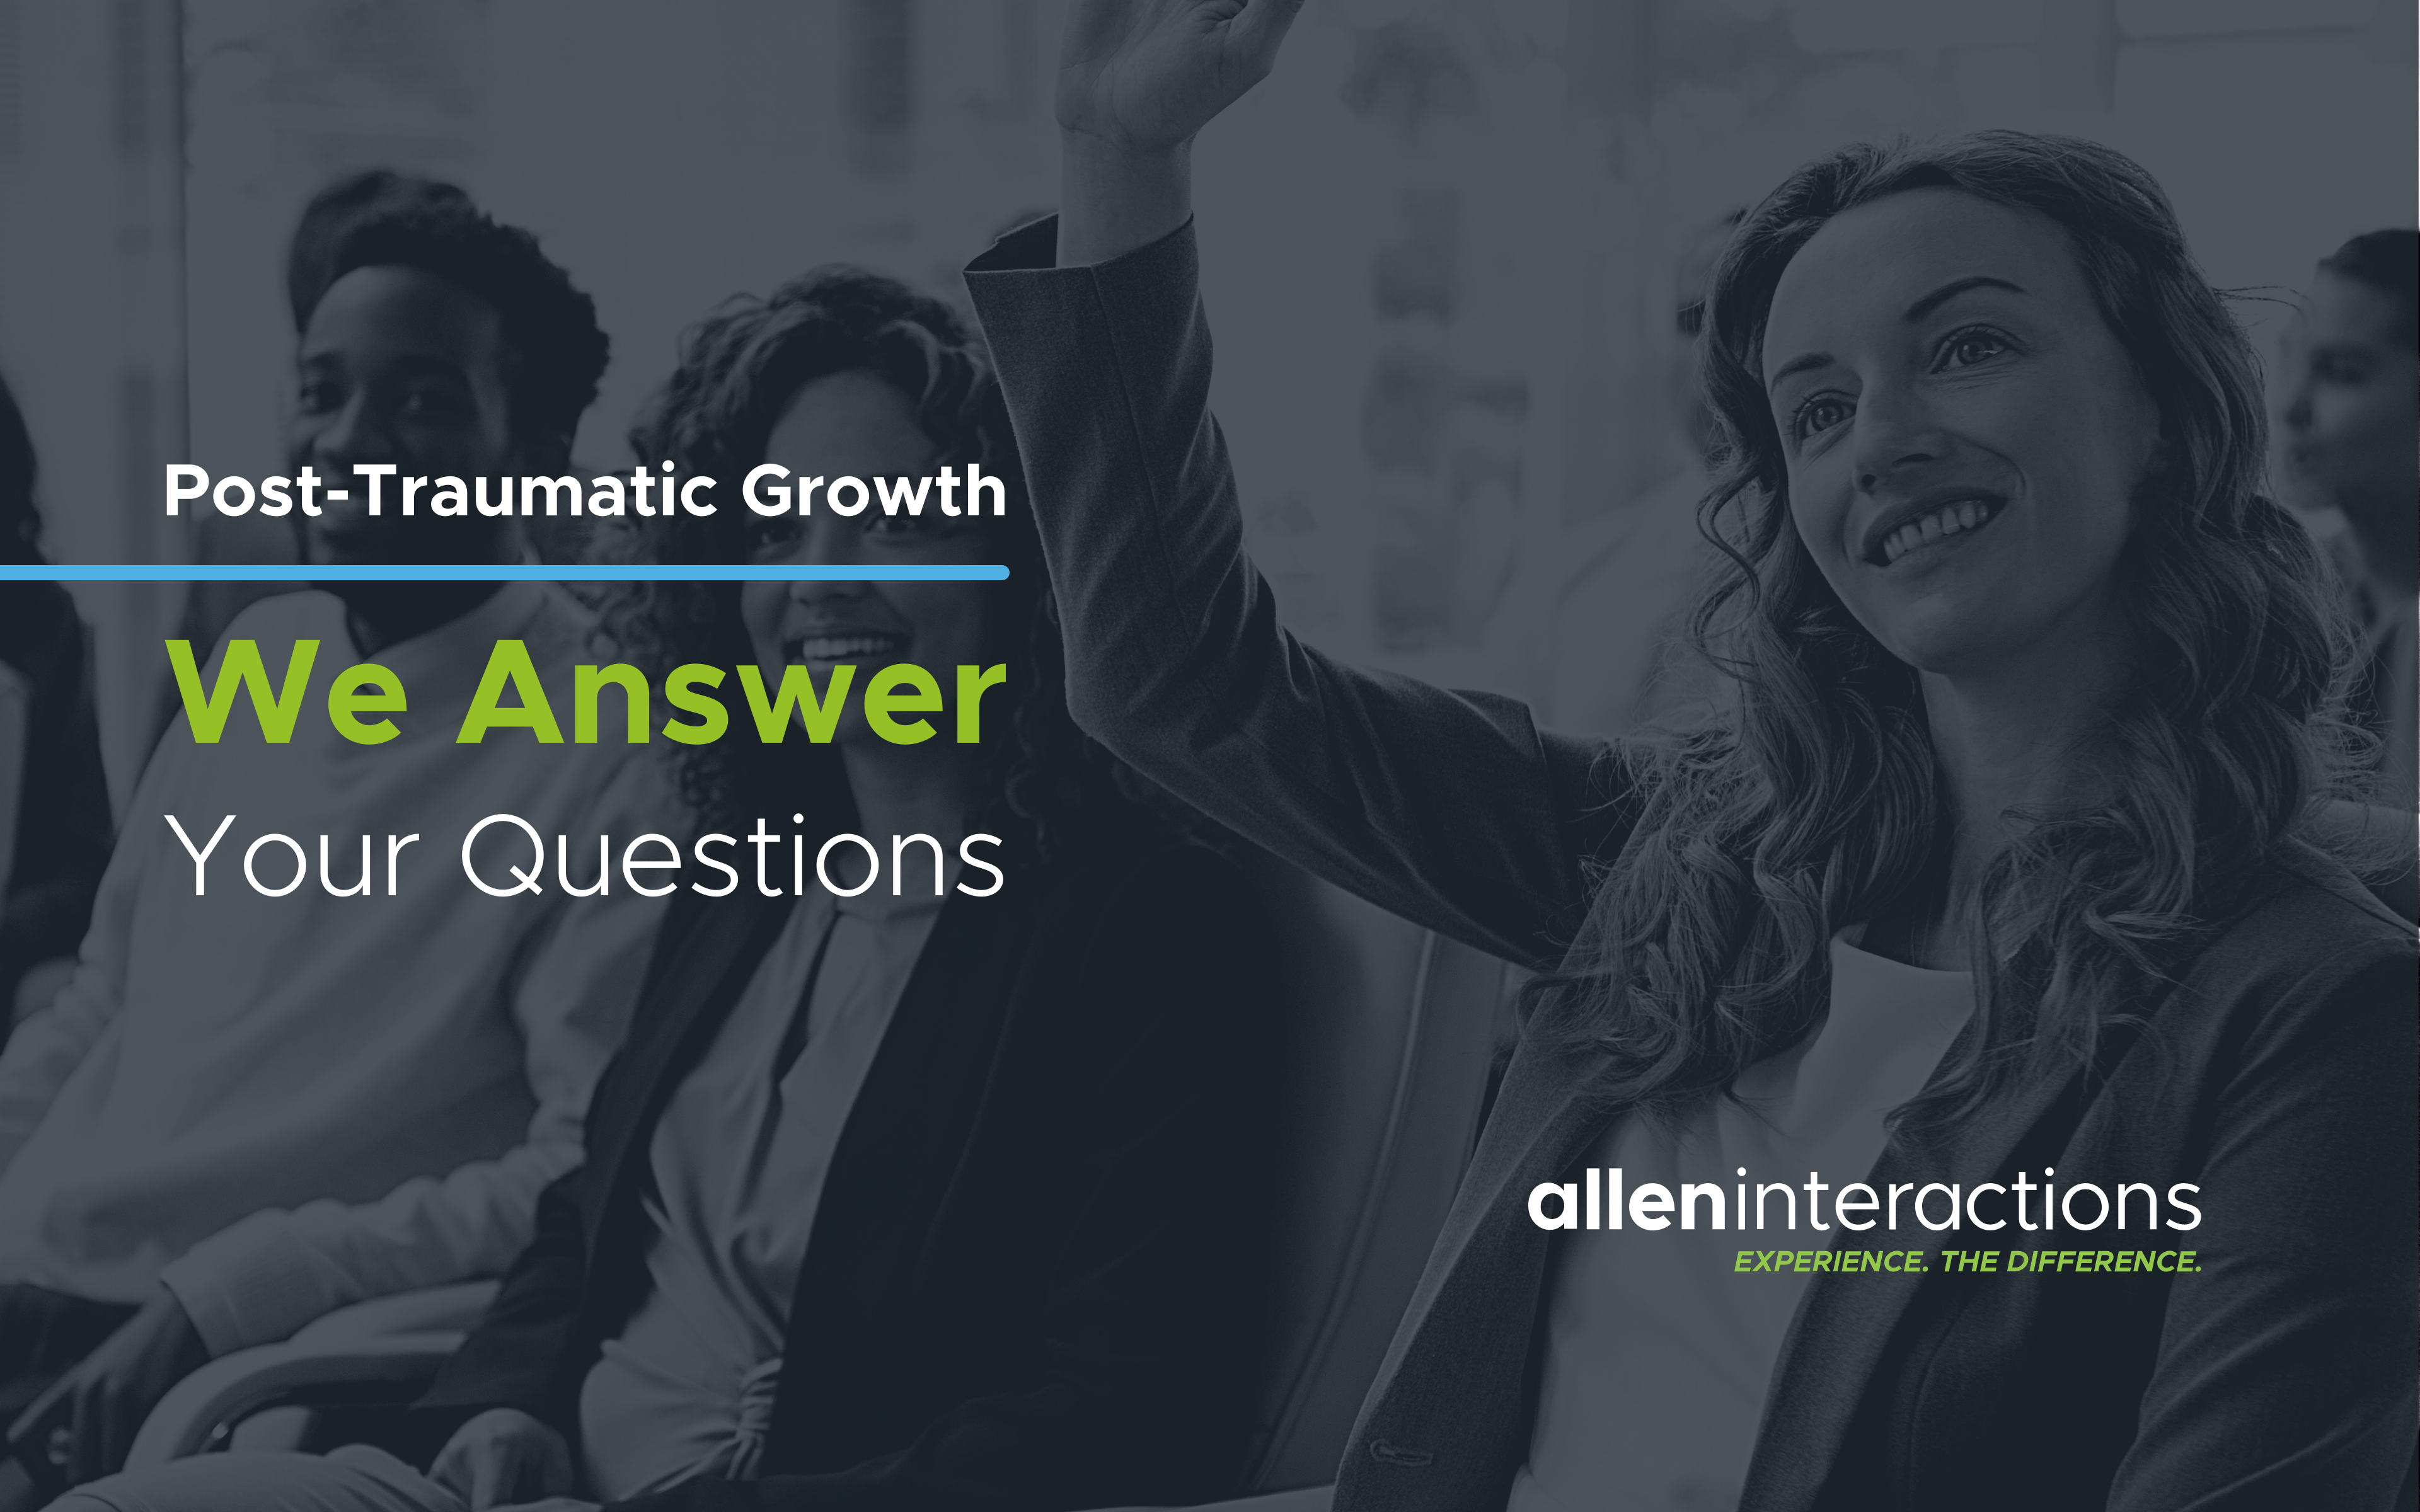 Post-Traumatic Growth: We Answer Your Questions